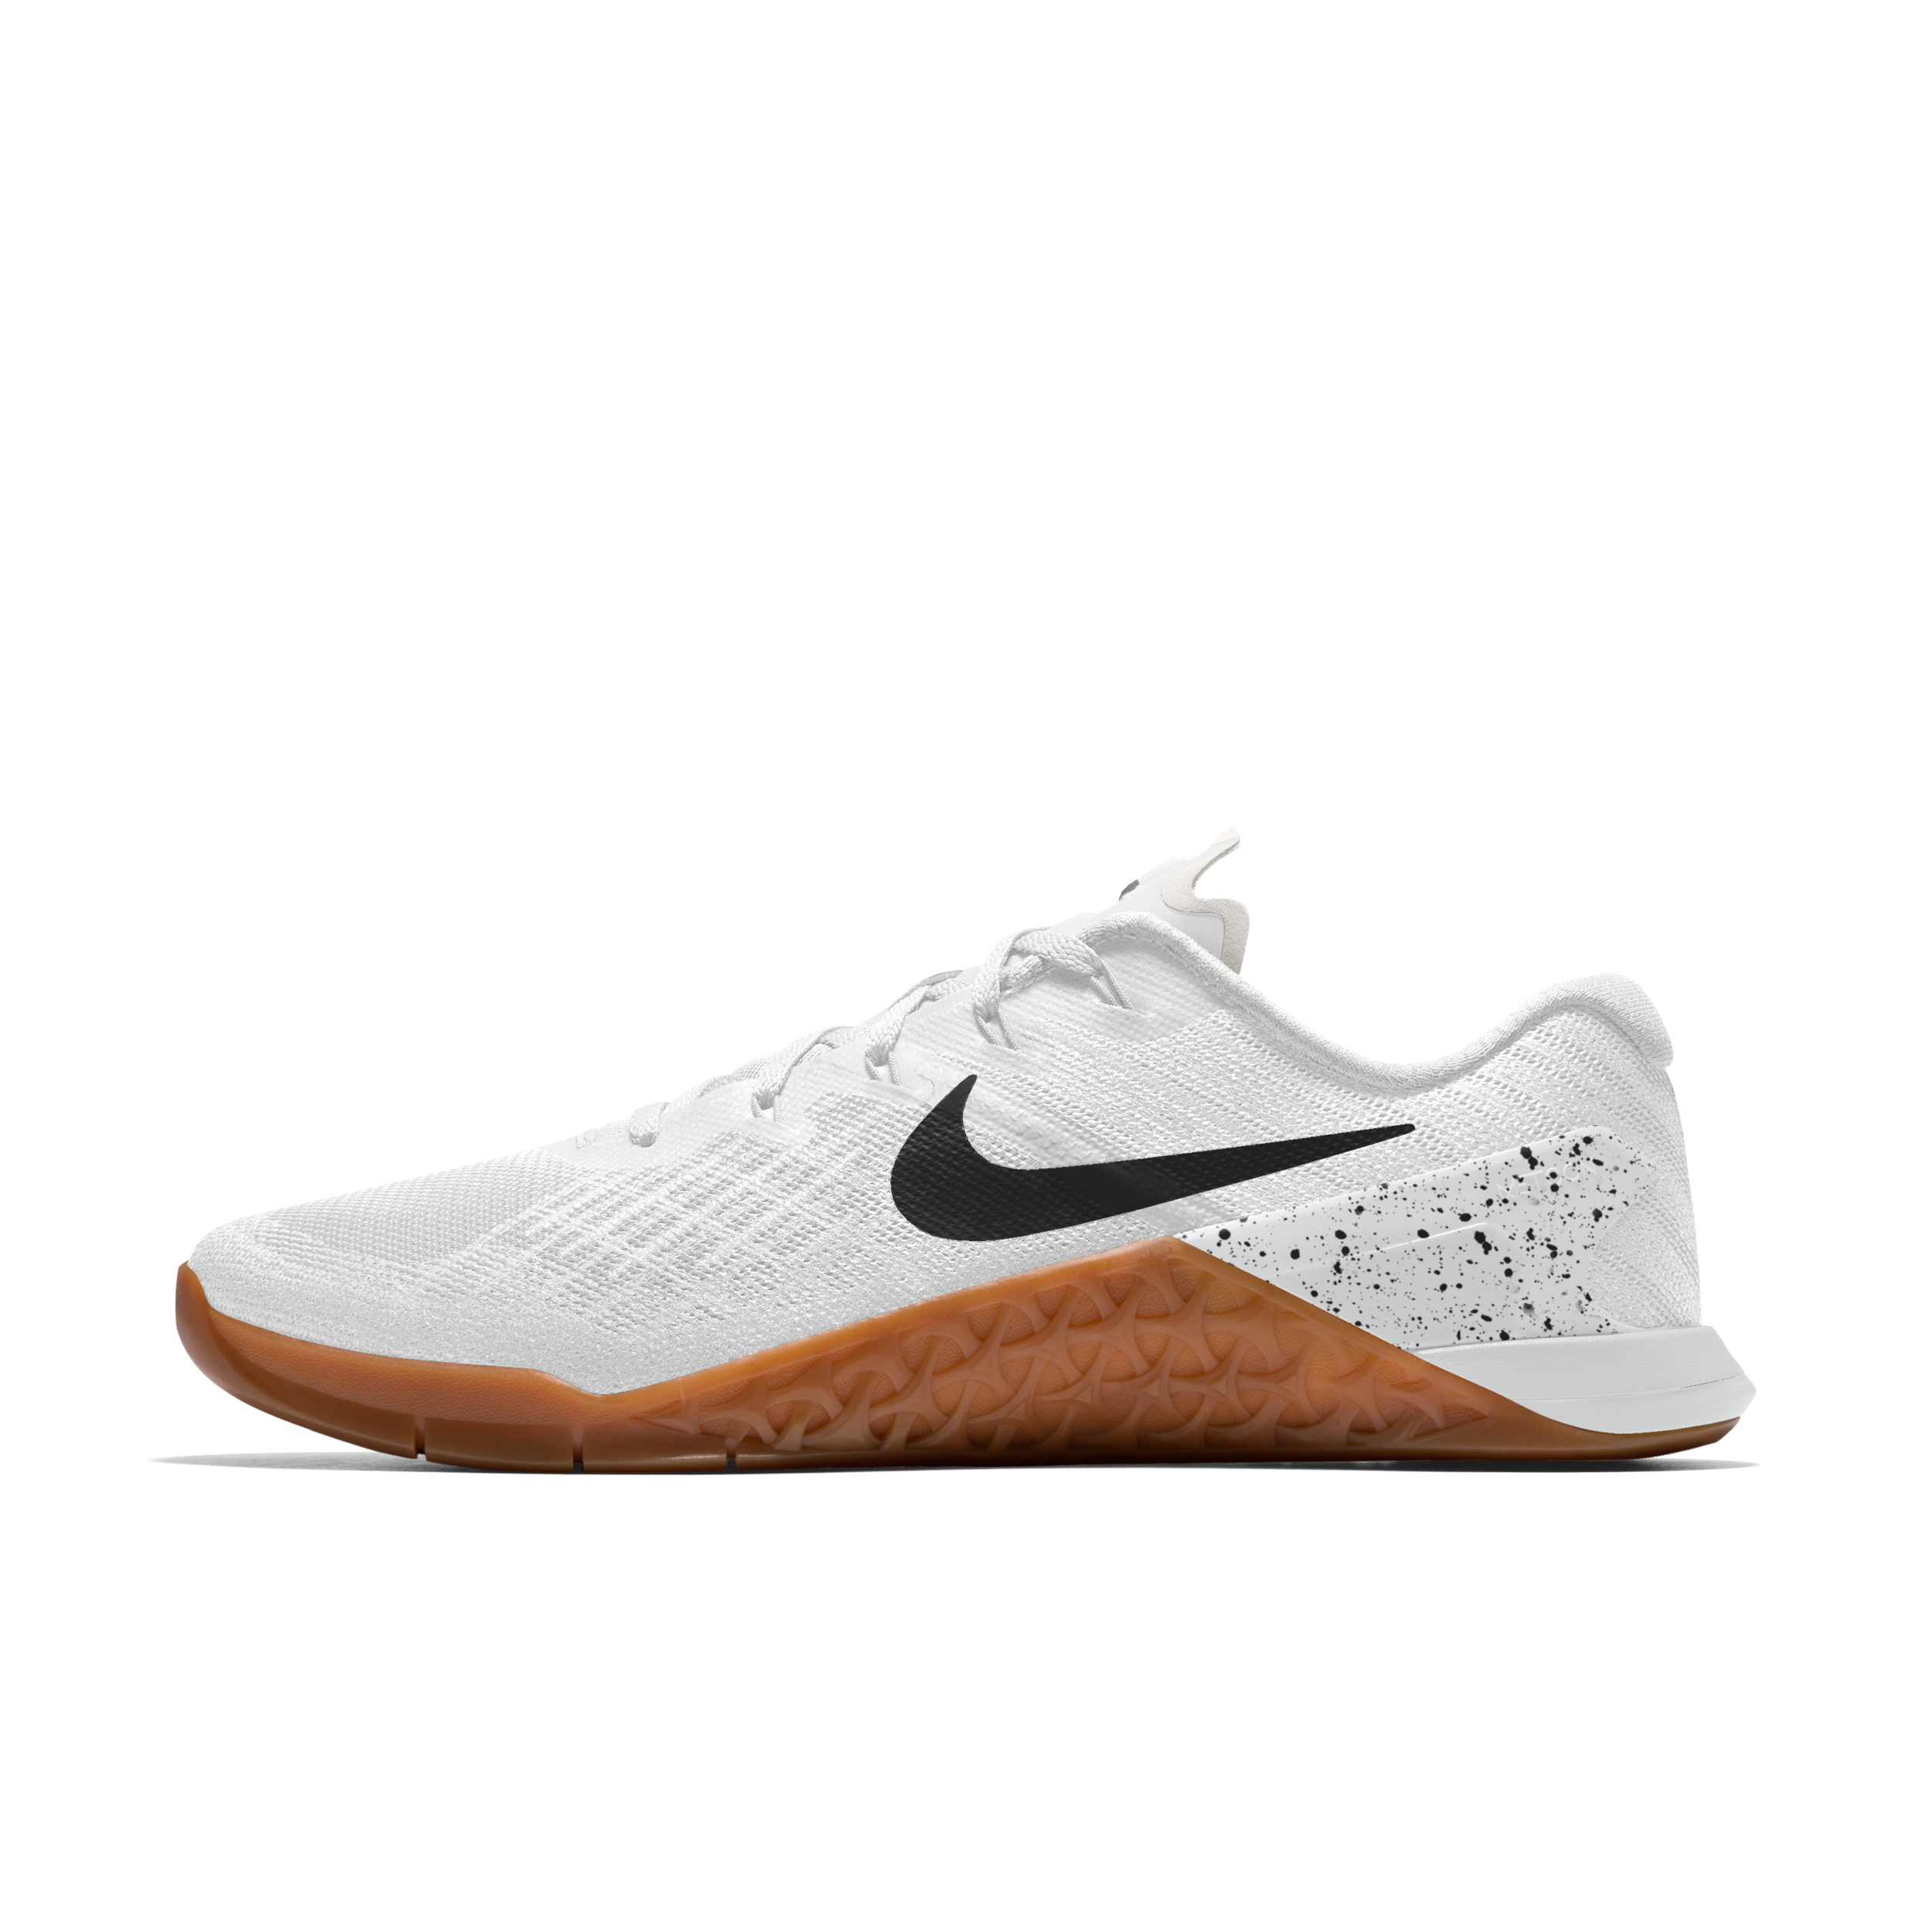 Encadenar Arquitectura Recuerdo  Nike Metcon 3 iD Training Shoe. Nike.com NZ | Nike metcon, Womens training  shoes, White casual shoes